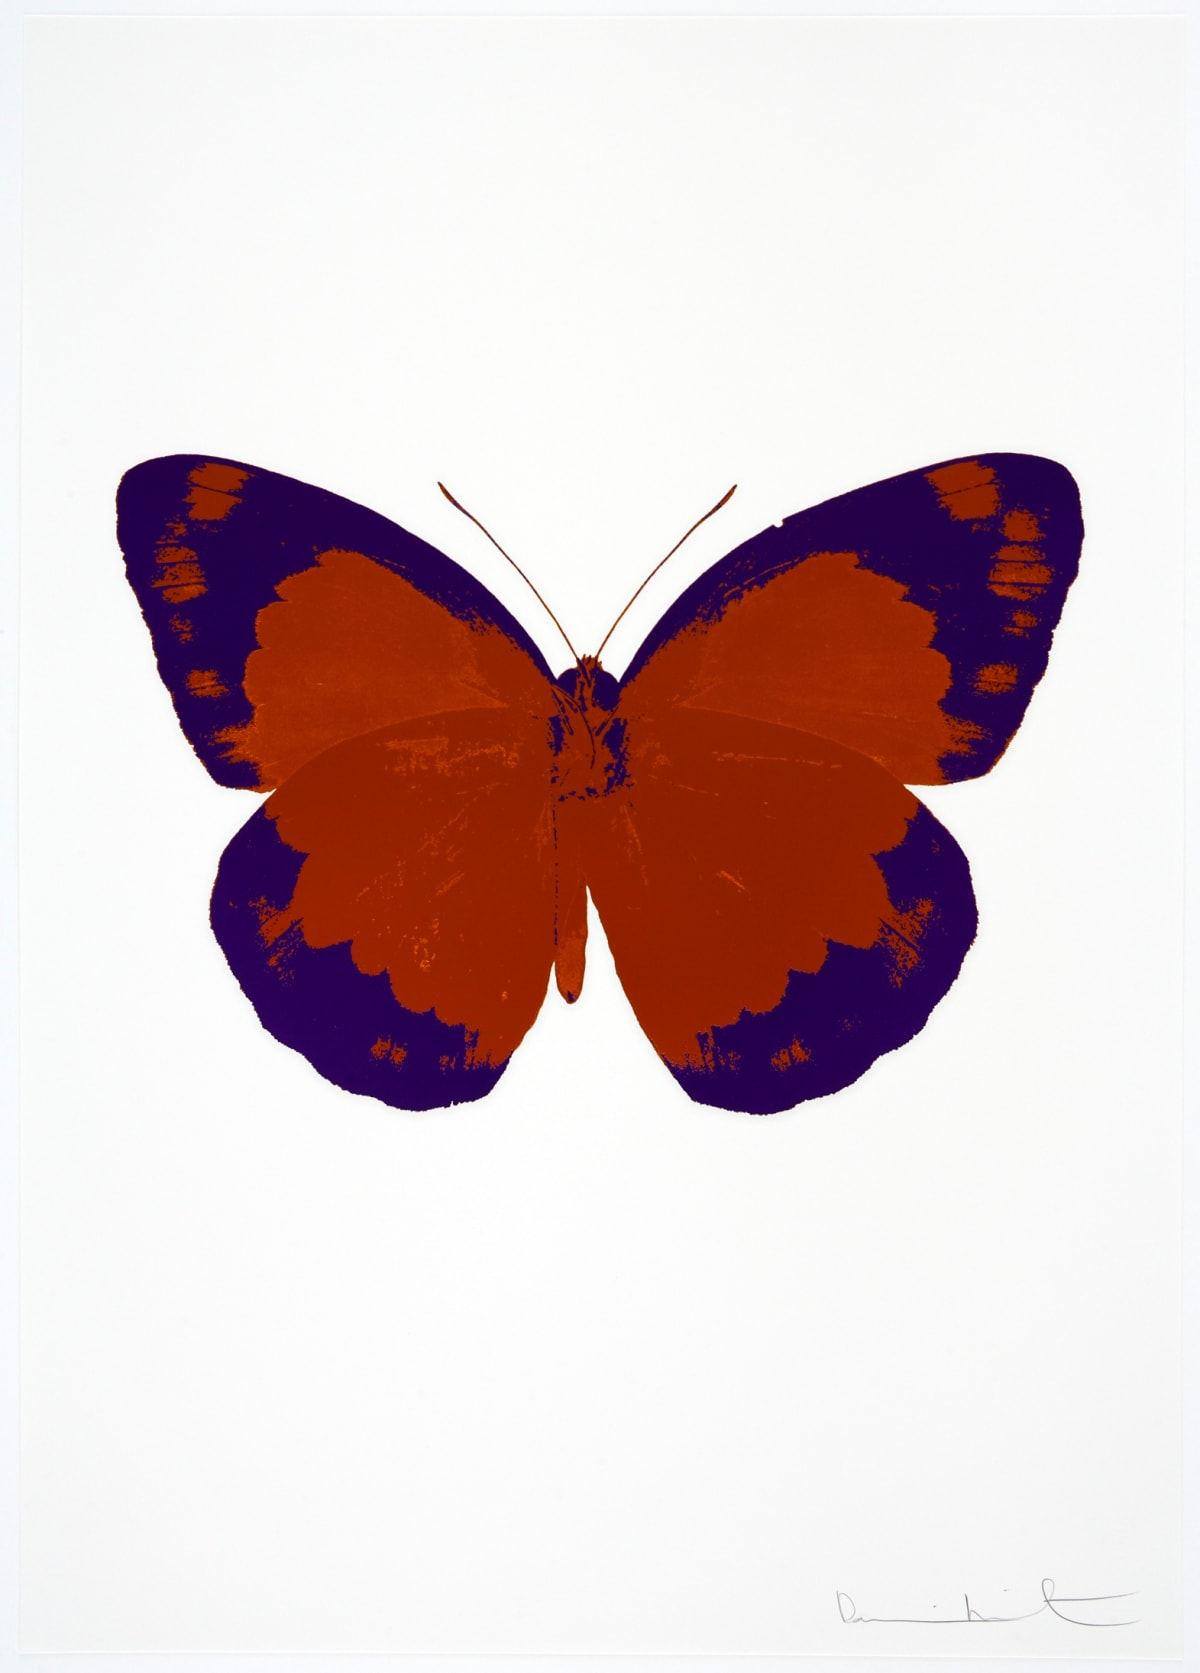 Damien Hirst The Souls II - Prairie Copper/Imperial Purple/Blind Impression, 2010 2 colour foil block on 300gsm Arches 88 archival paper. Signed and numbered. Published by Paul Stolper and Other Criteria 72 x 51cm OC7857 / 658-40 Edition of 15